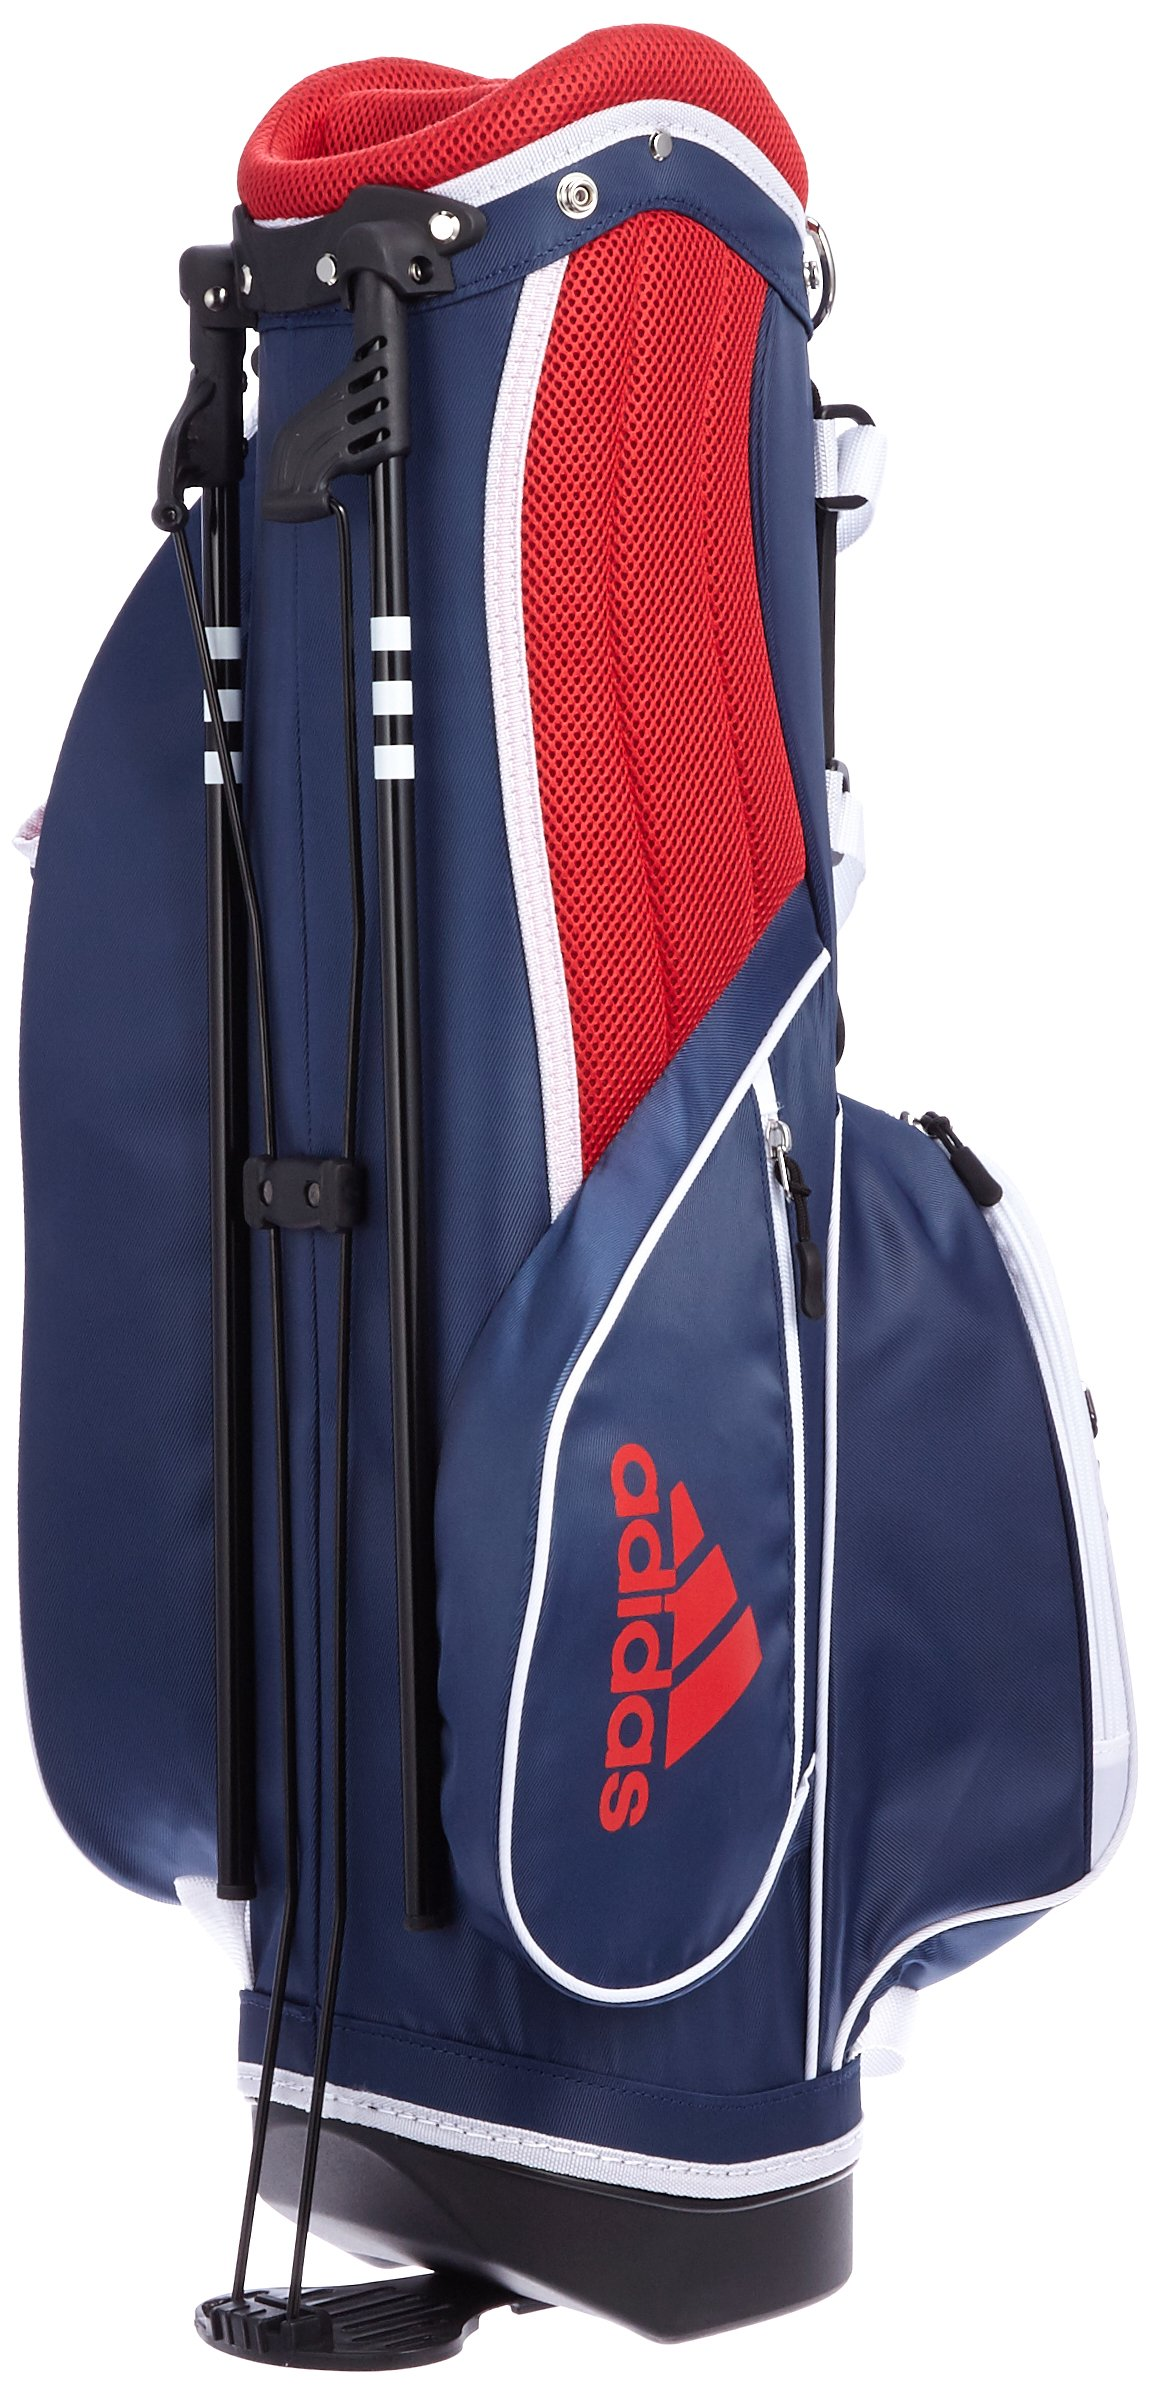 Adidas Golf Junior Caddy Bag Stand Type 39 inch nameplate included / 7 inch / 39 inch compatible AWT 56 A92263 by adidas (Image #2)